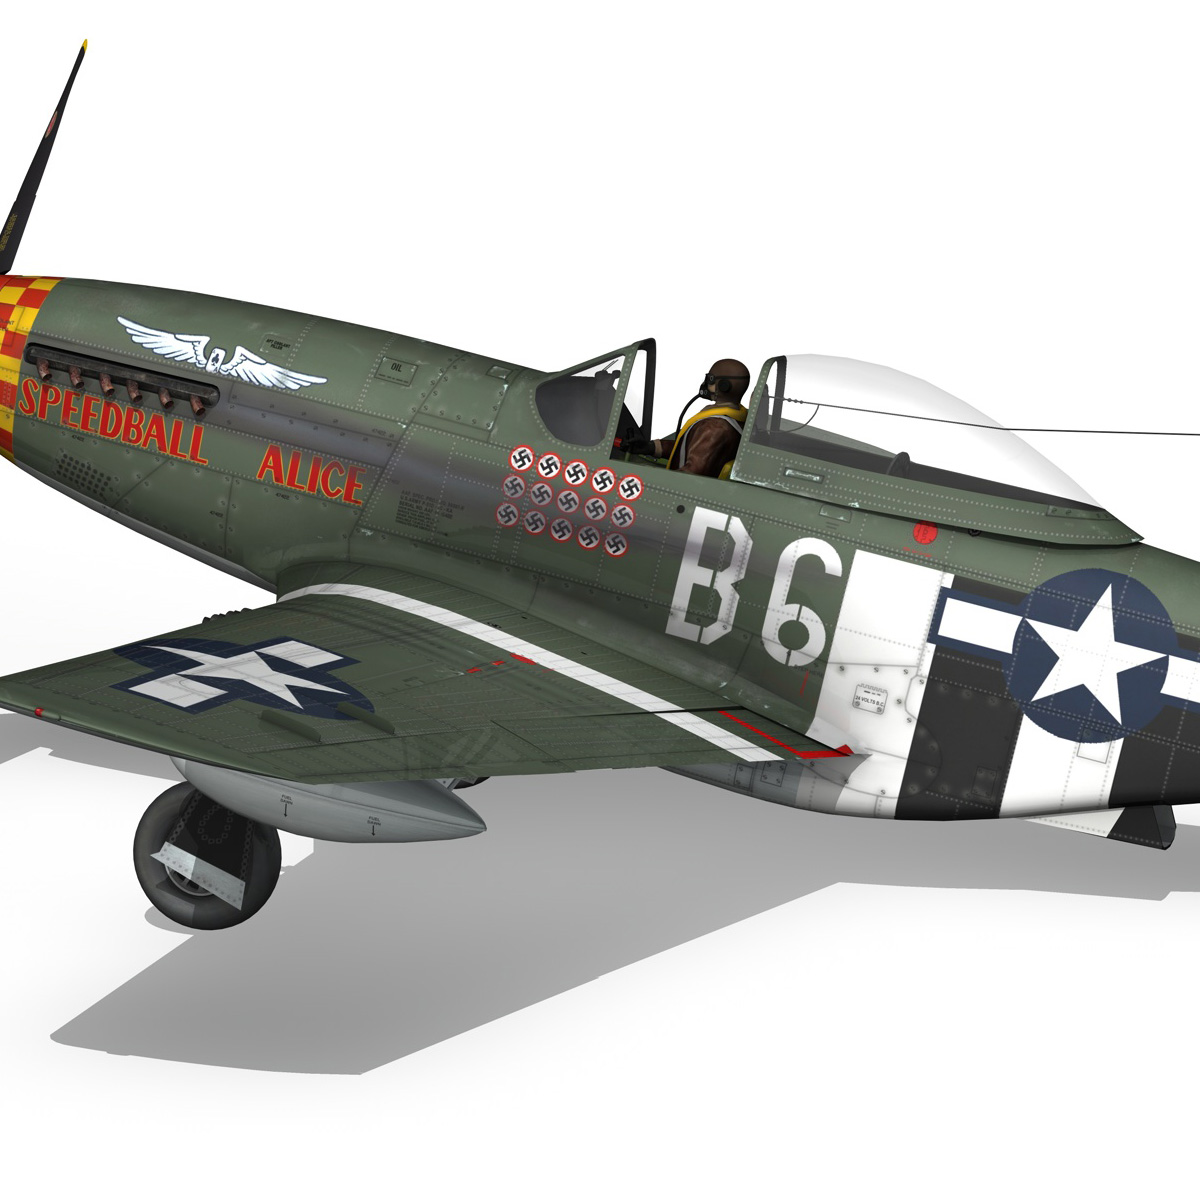 north american p-51d mustang – speedball alice 3d model fbx c4d lwo obj 280327